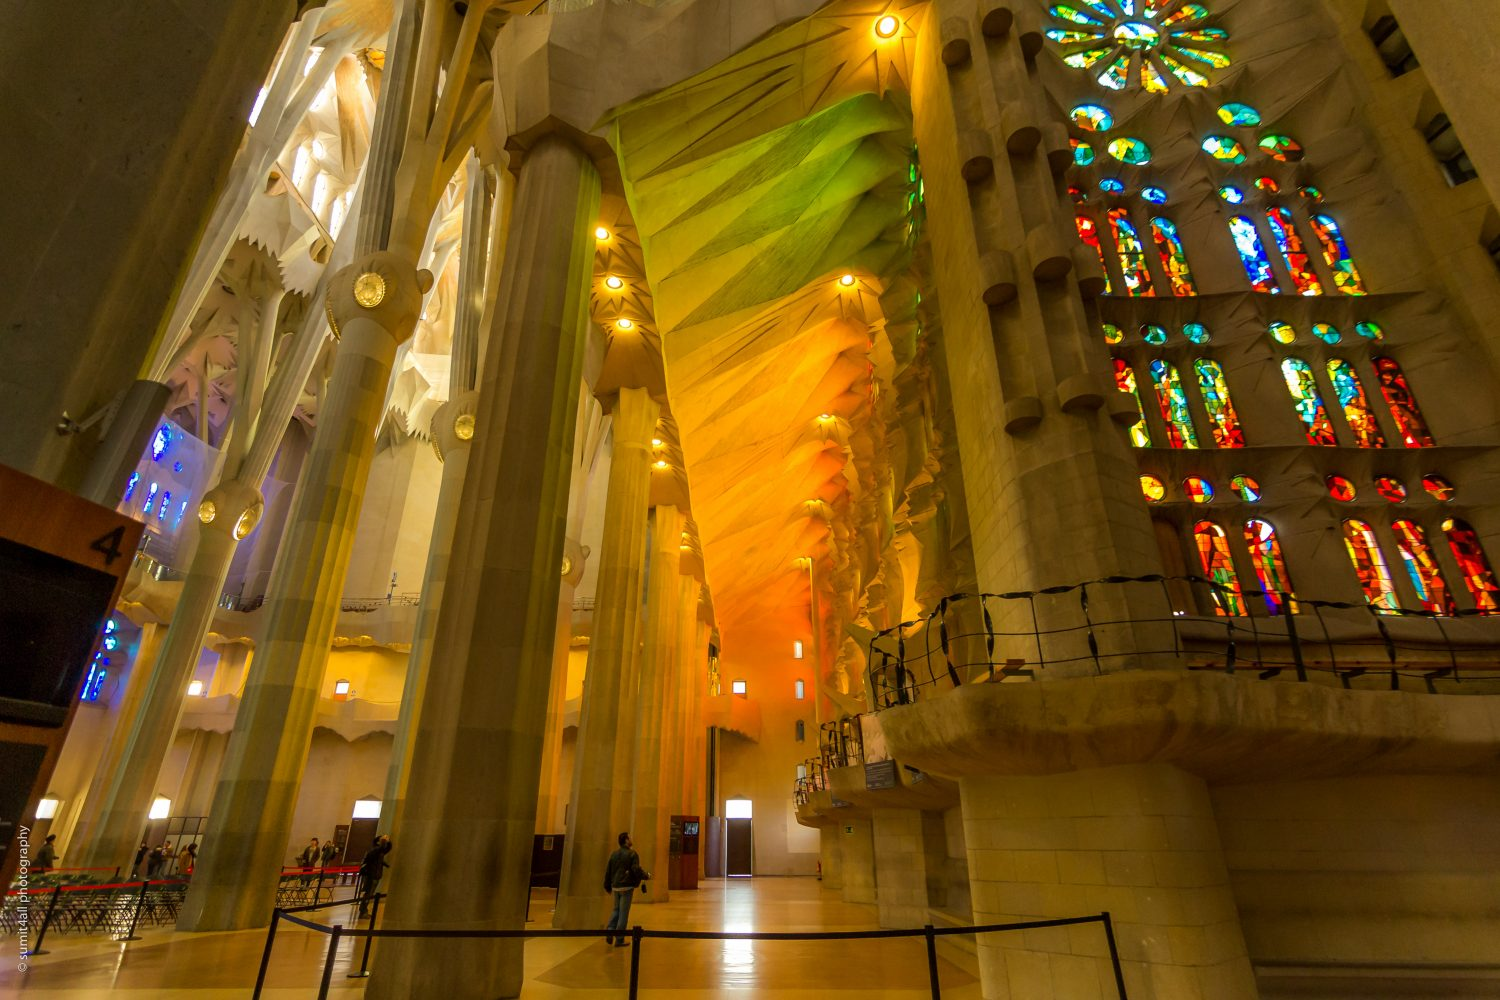 Shades of different colors formed by light coming through the stained glass windows inside the Sagrada Familia